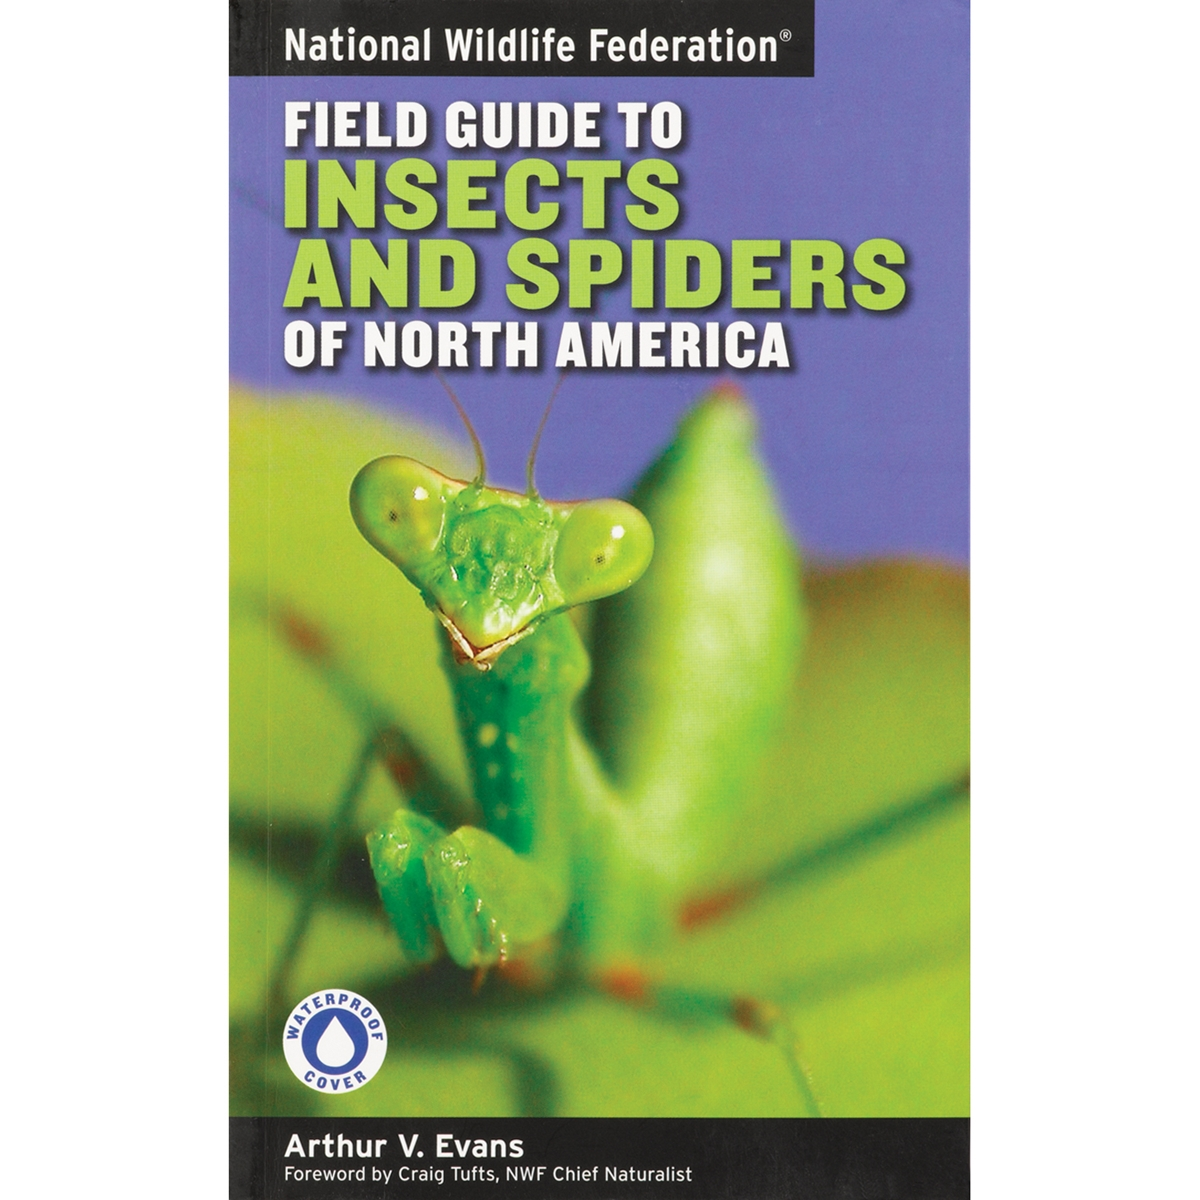 NWF Field Guide to Insect and Spiders